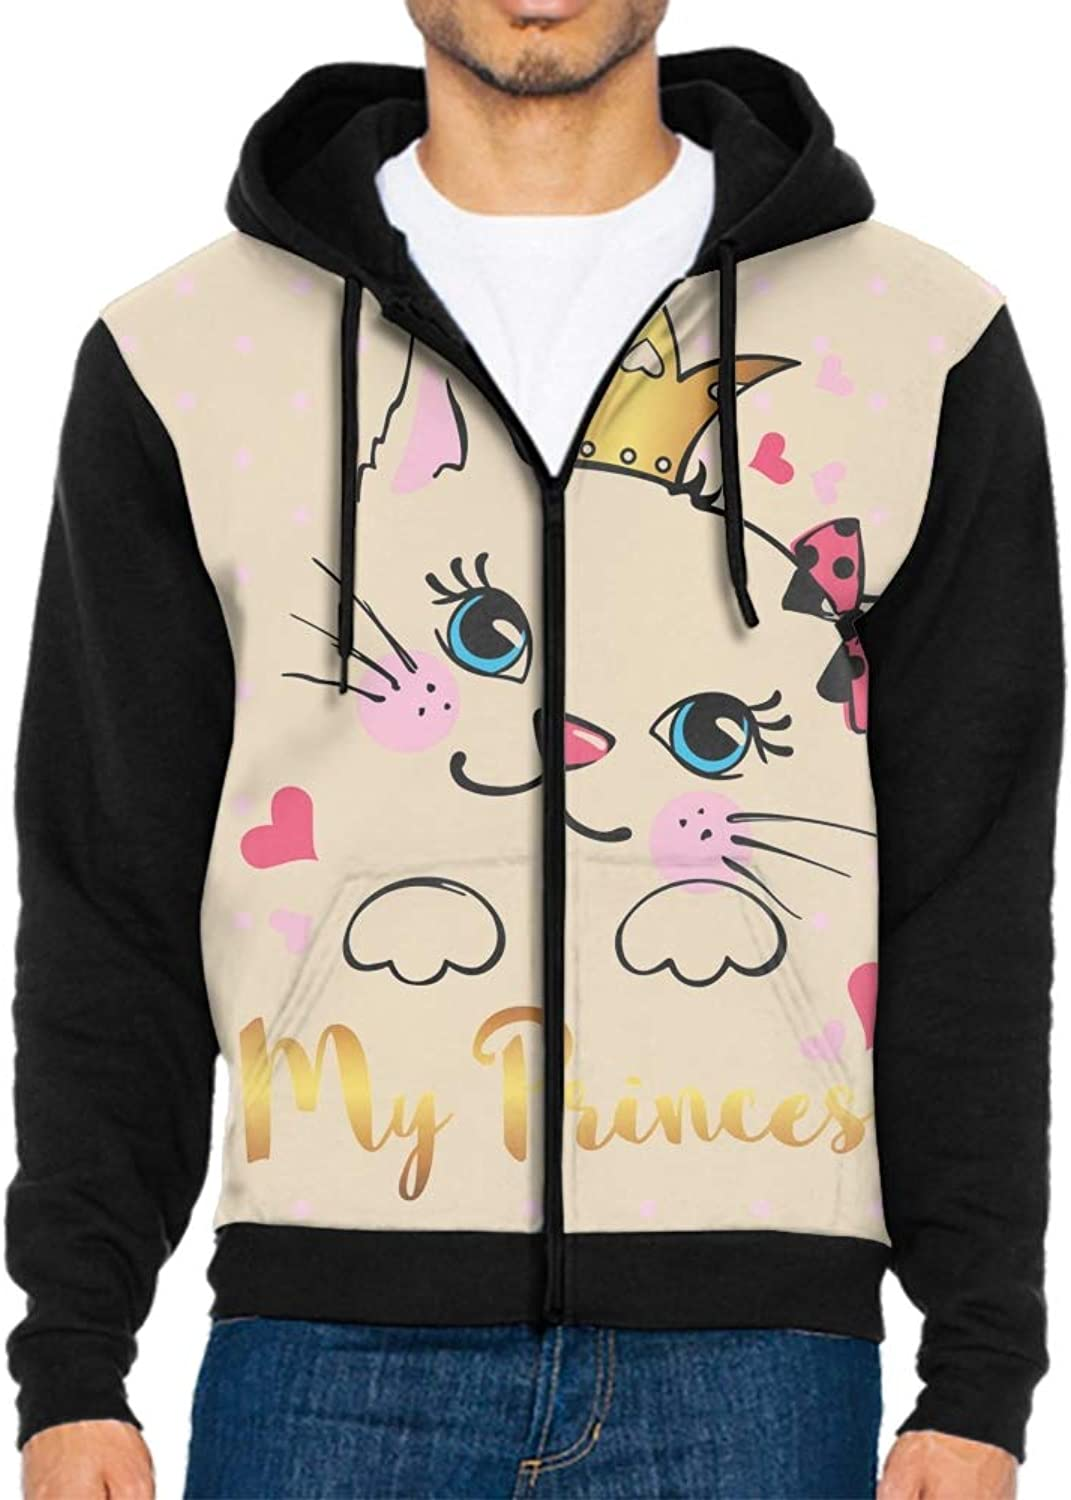 ZGGGB Unisex 3D Full Zip Hoodie Funny Cats Print Hooded Sweatshirt Jacket with Pockets SXXL